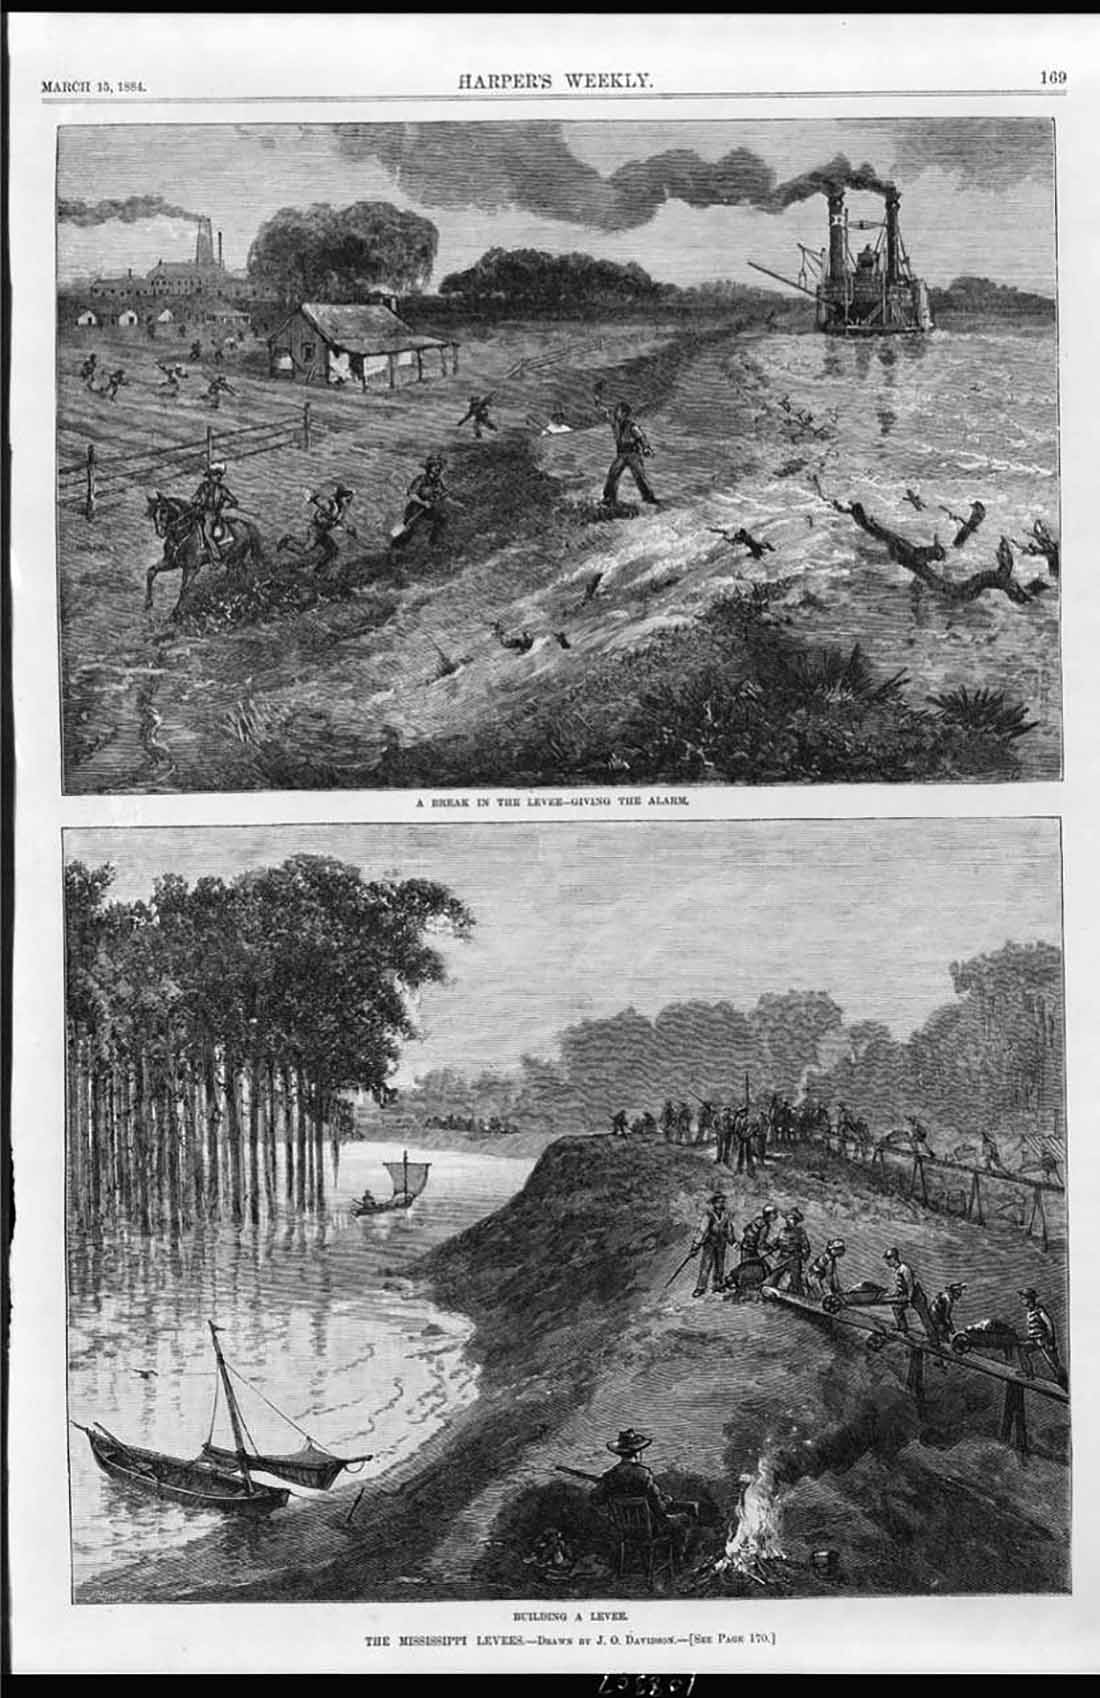 Black and white illustration (top) possibly of the the 1882 Mississippi River flood which cost more than 20,000 people their homes, (bottom) Prison laborers, likely African-American, are forced to rebuild a levee along the Mississippi River, an overseer with a shot gun is seen in the foreground from Harper's Weekly, 1884.